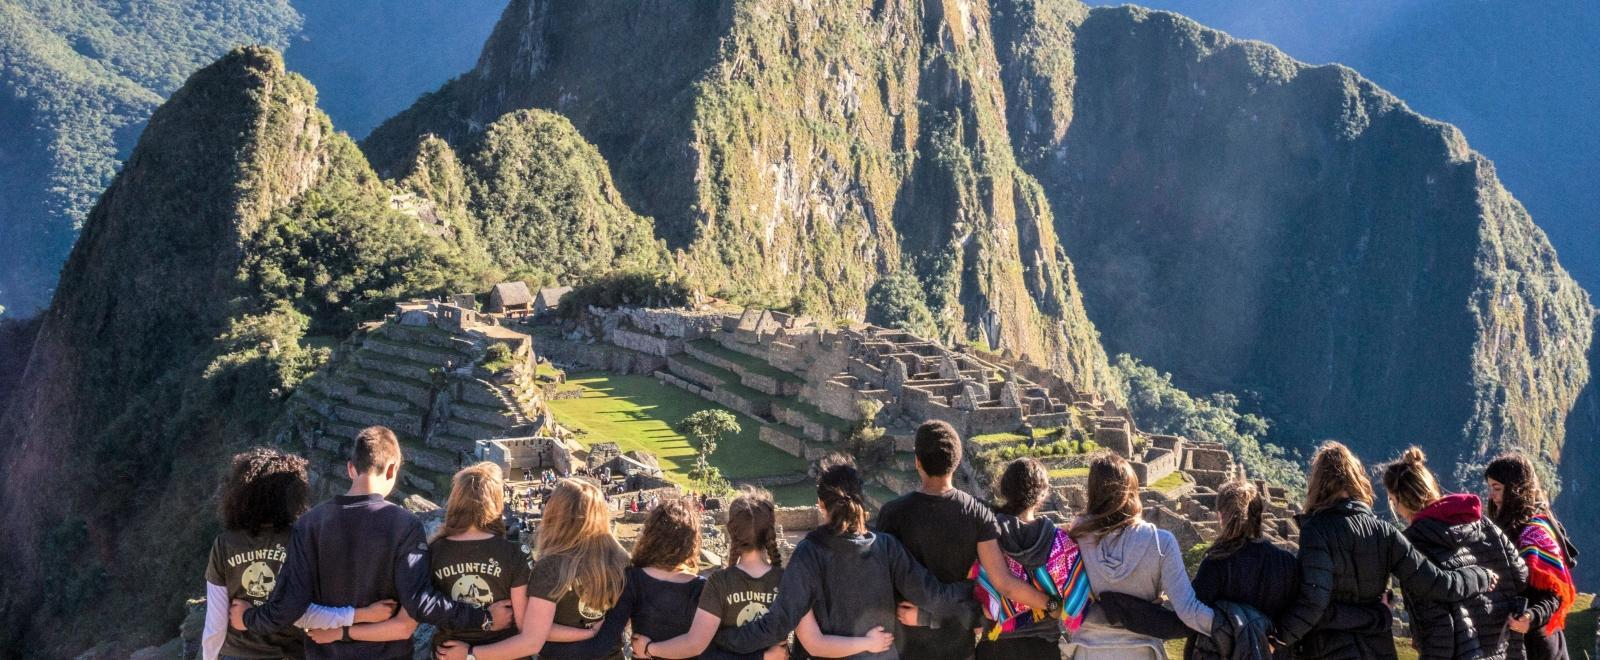 Projects Abroad volunteers visit Machu Picchu on their adventure holiday to Peru.